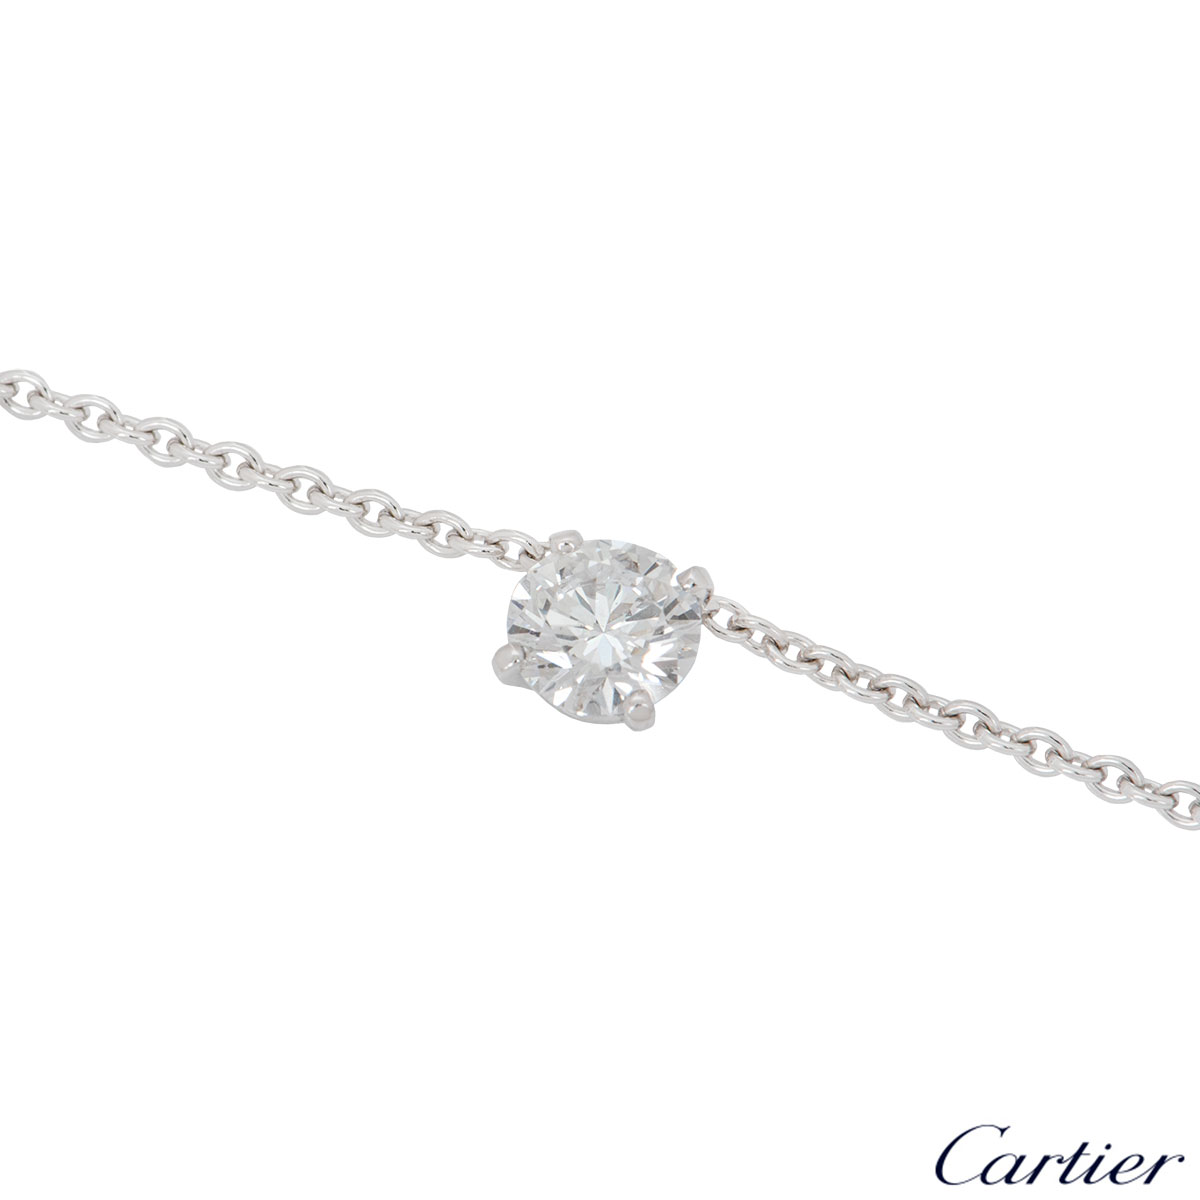 Cartier White Gold Diamond Necklace 0.80ct E/VS2